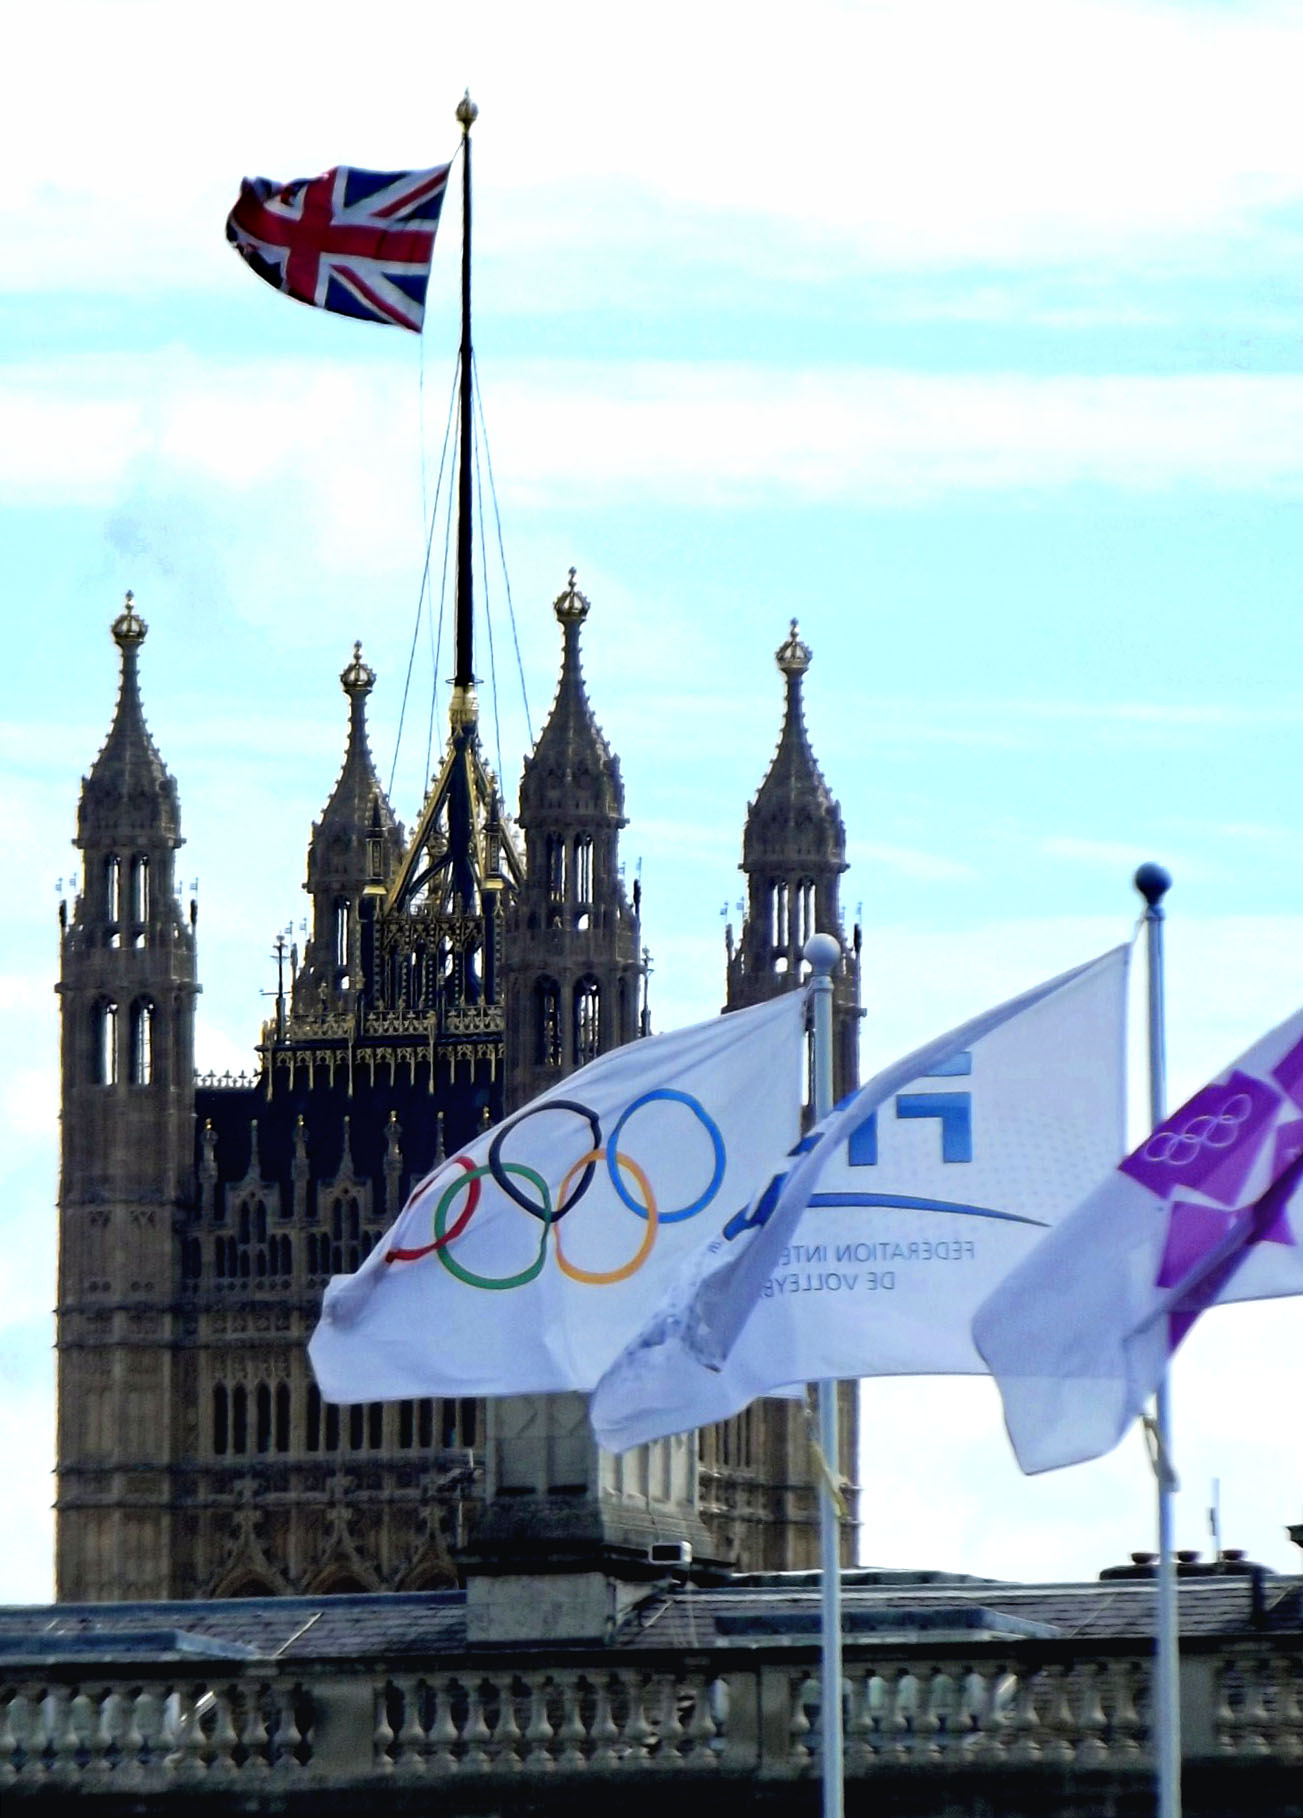 Flags in front of the Houses of Parliament